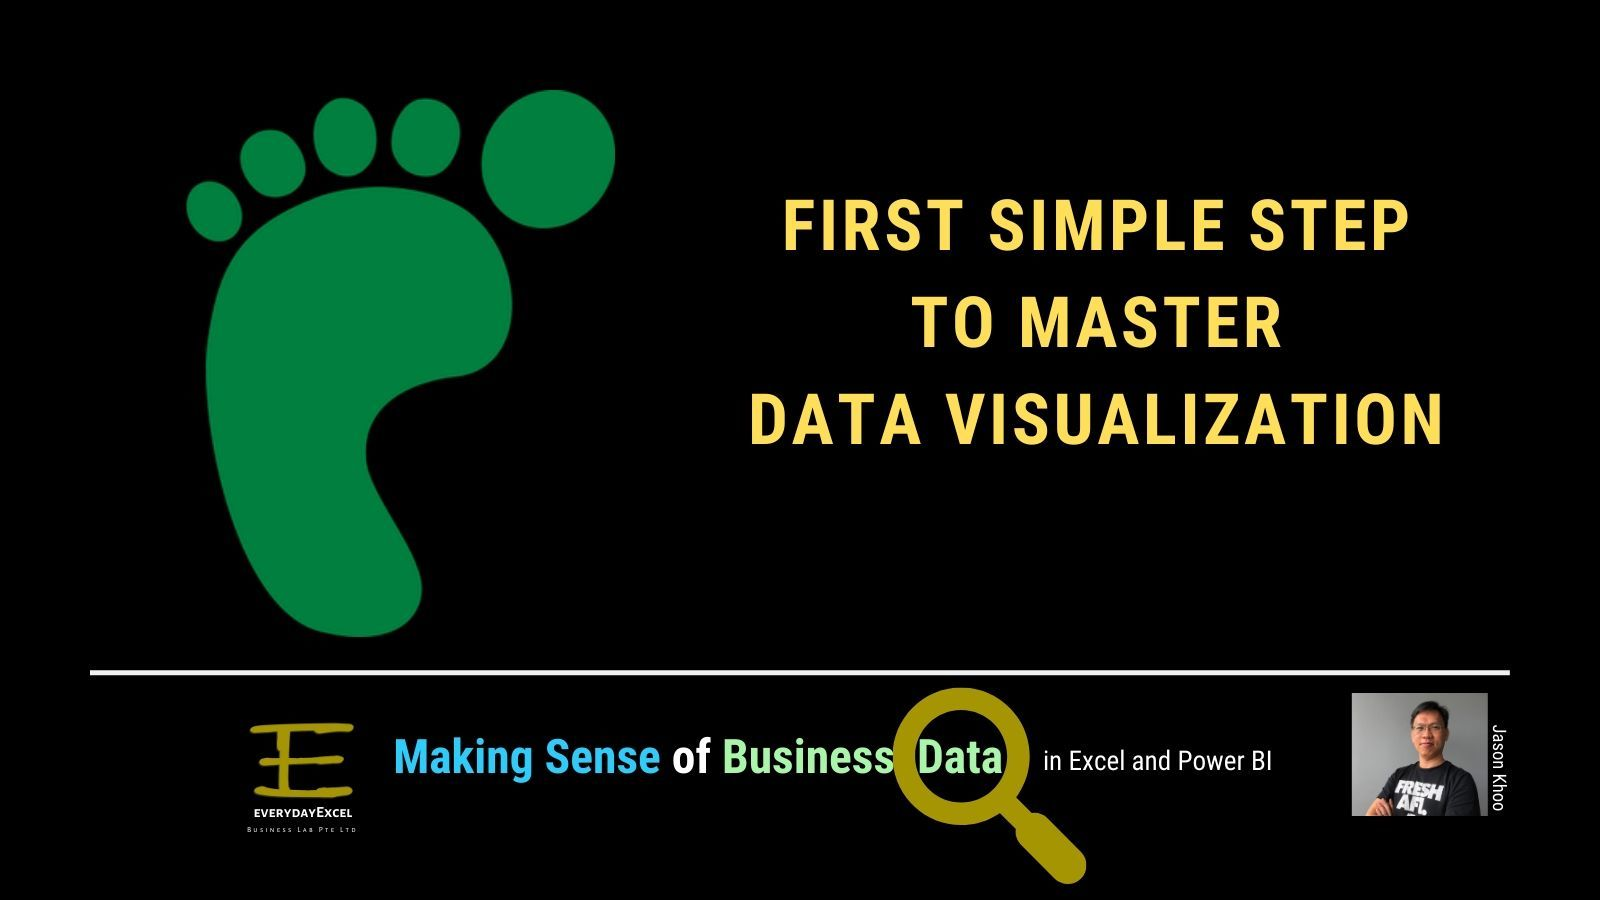 first-simple-step-to-master-data-visualization